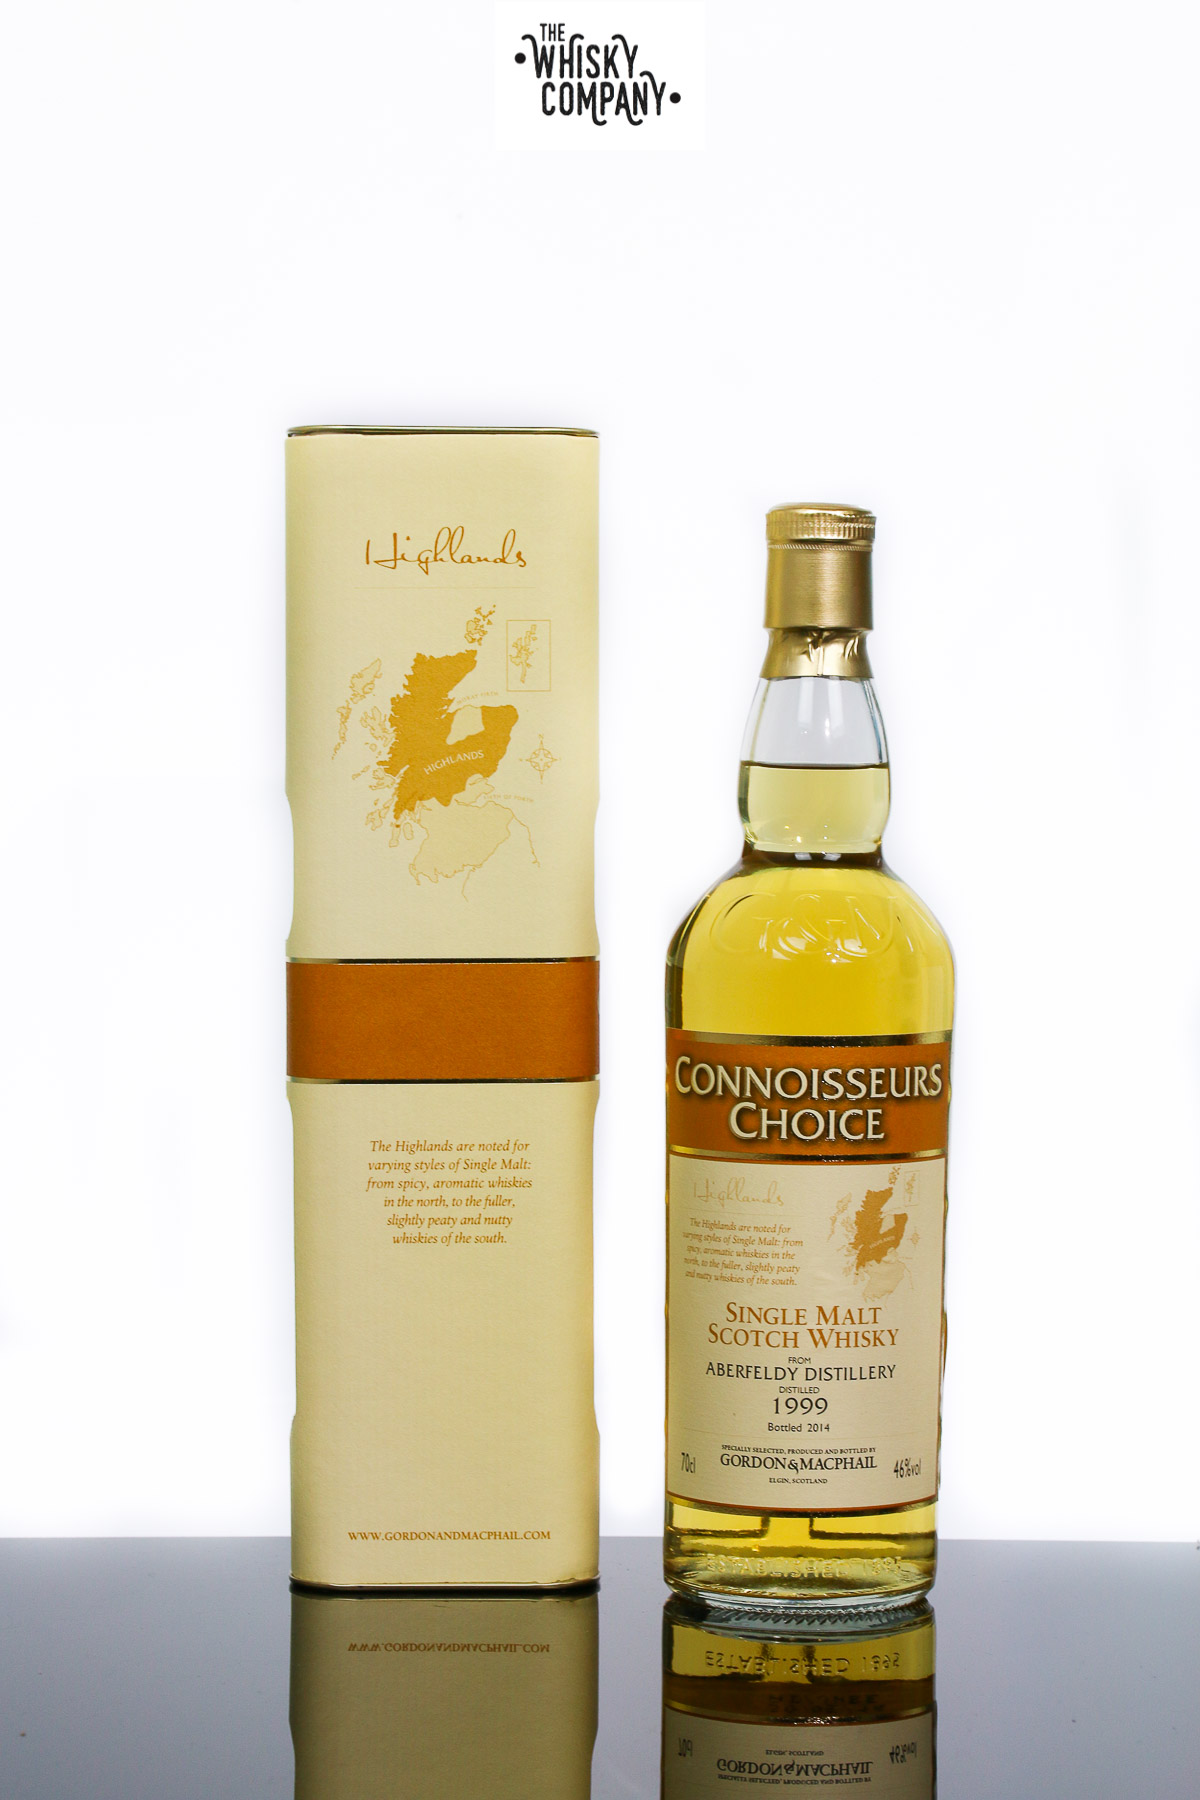 Gordon & MacPhail 1999 Aberfeldy Highland Single Malt Scotch Whisky (700ml)